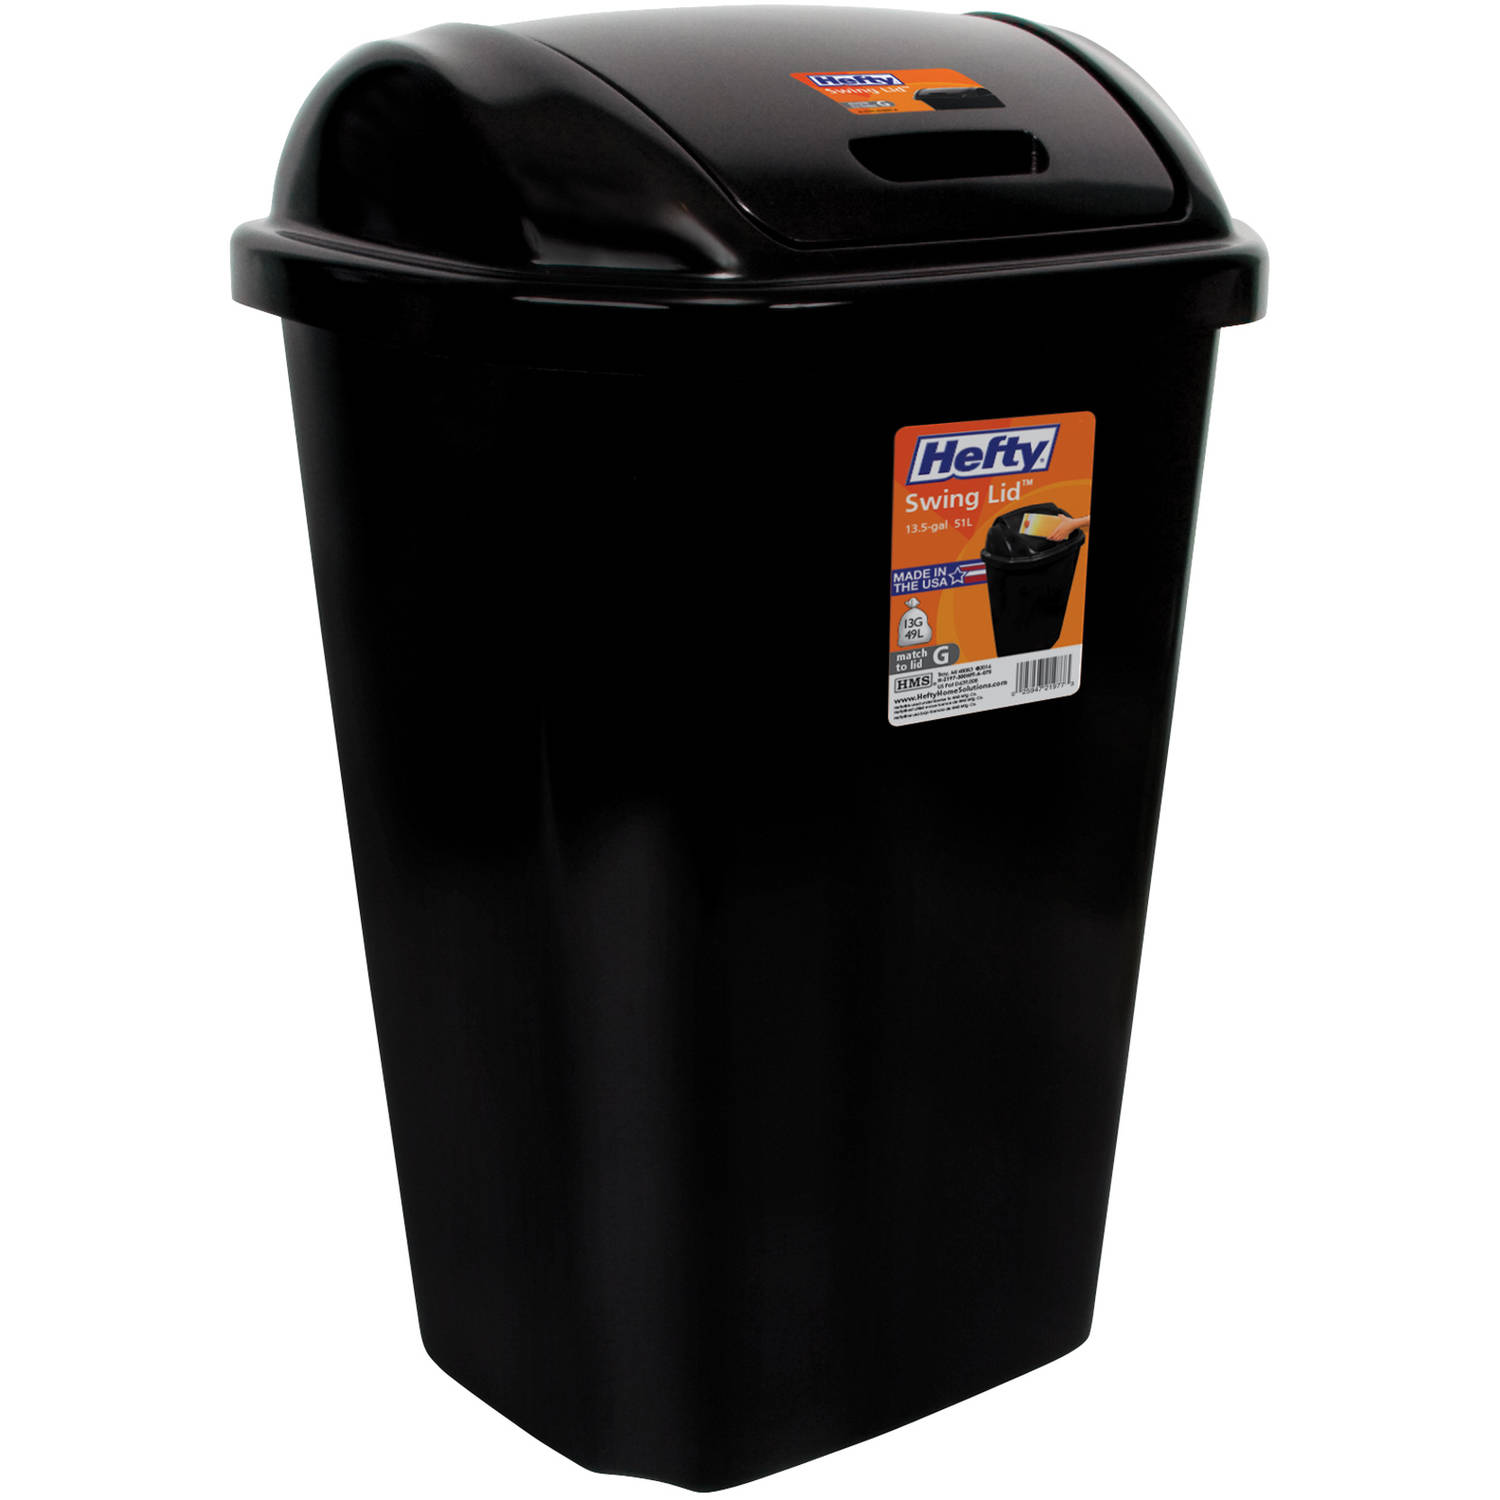 Merveilleux Hefty Swing Lid 13.5 Gal Trash Can, Multiple Colors   Walmart.com